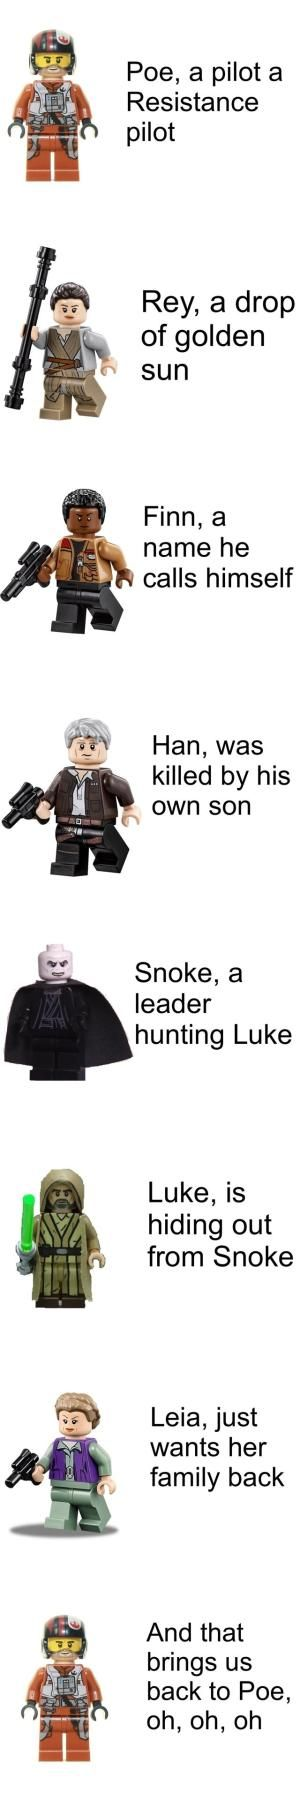 The Sound Of Music Star Wars Edition Imgur By Juliana Star Wars Memes Star Wars Humor Lego Star Wars